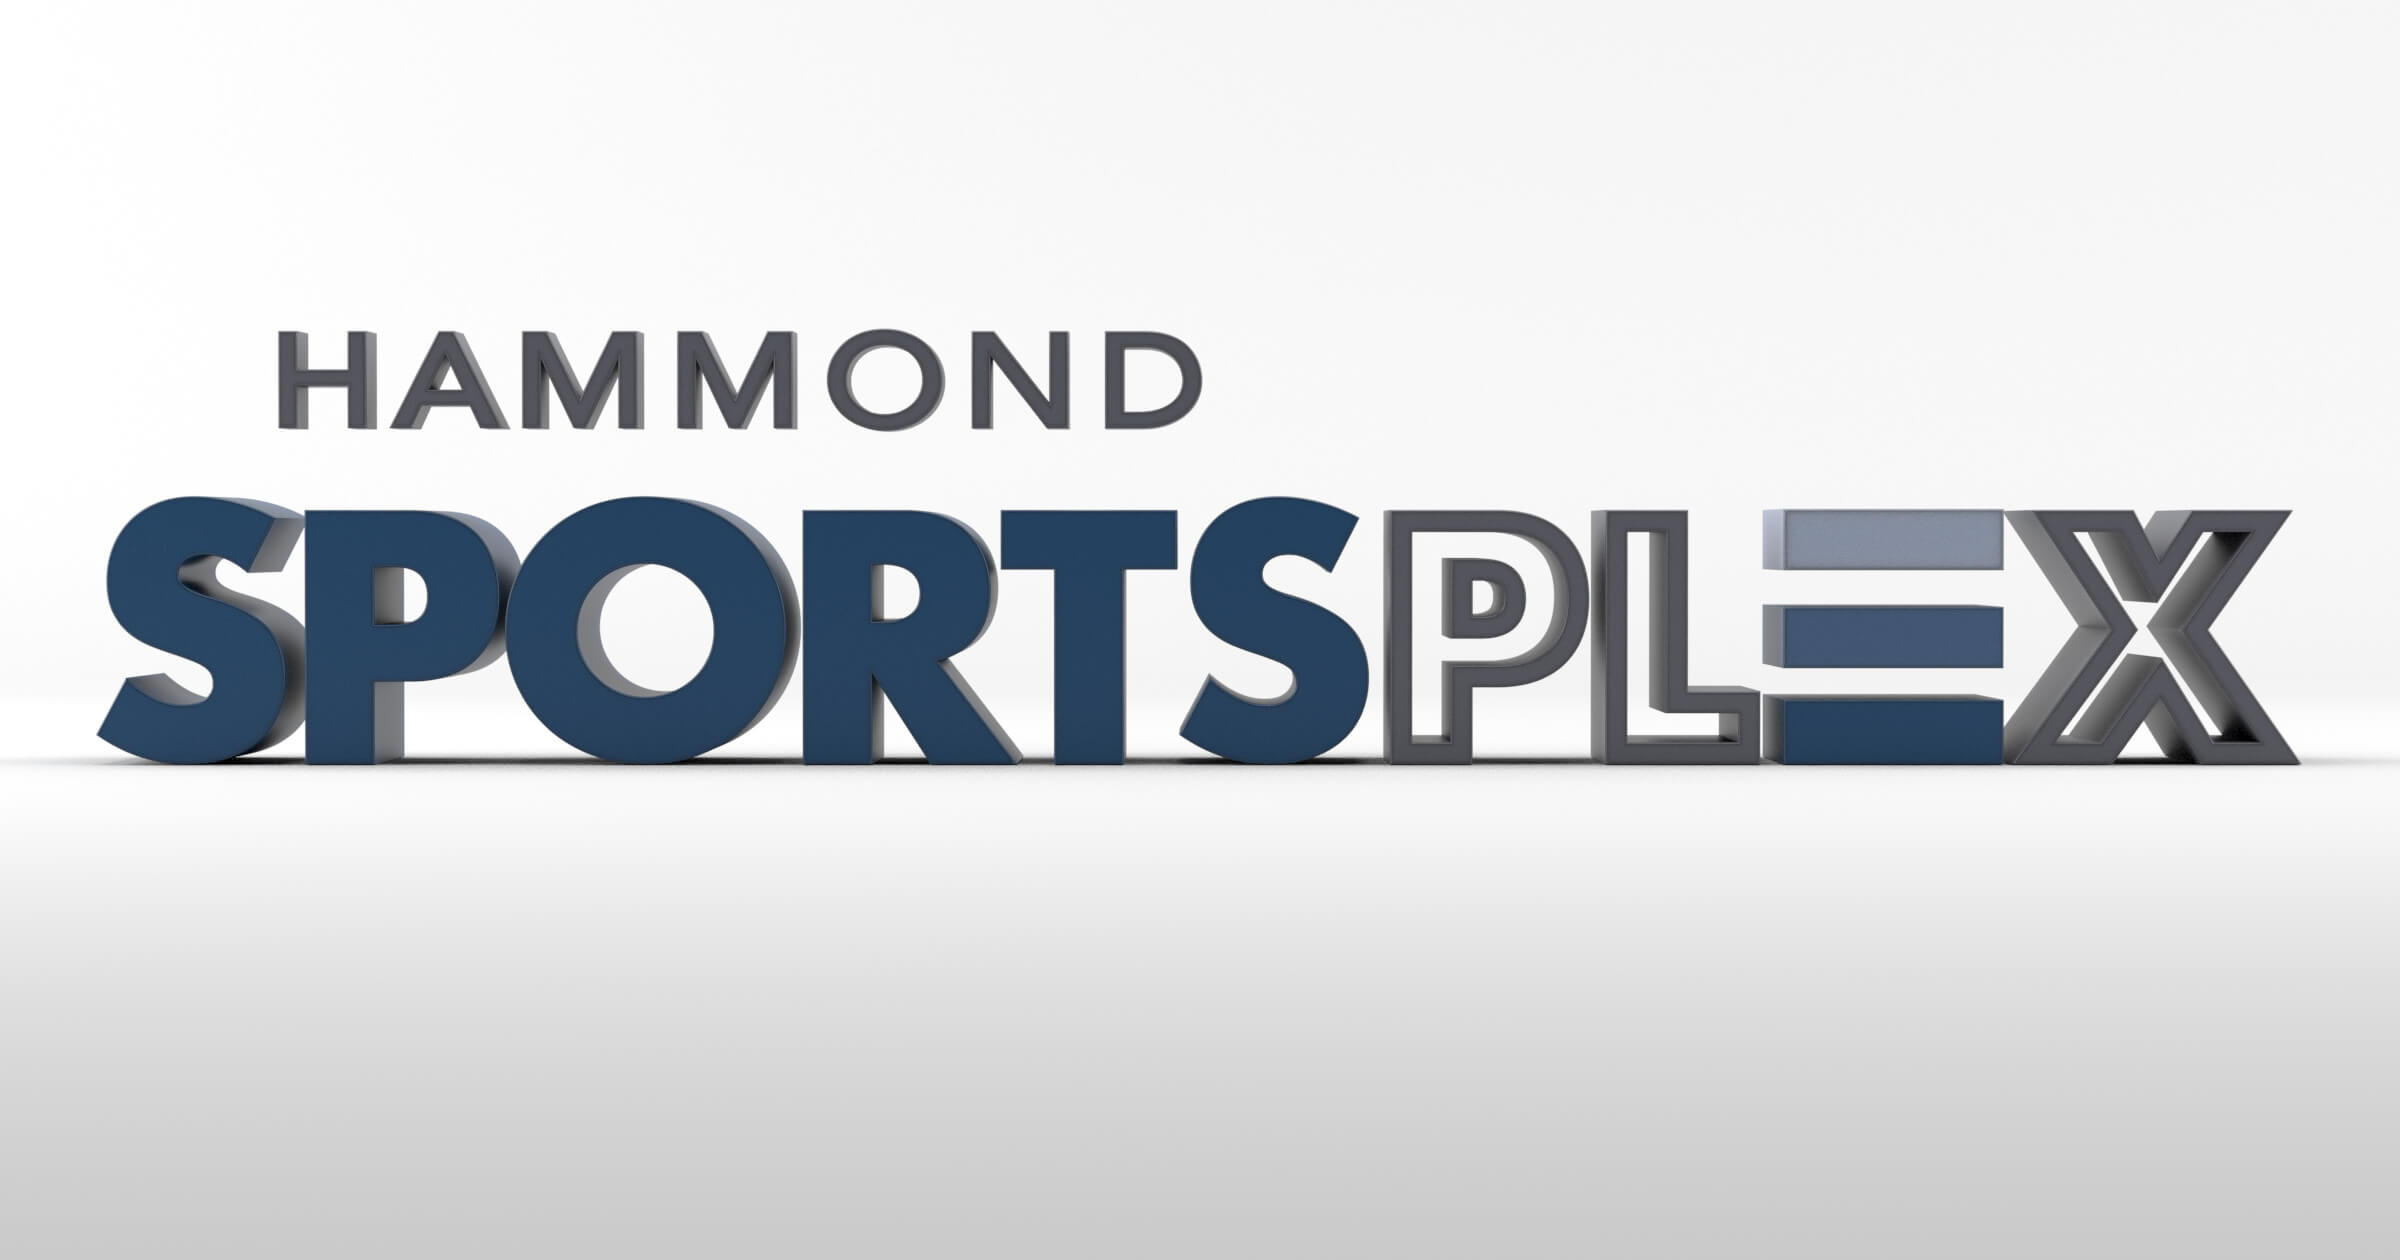 Open hammondsportsplex.com in a new tab